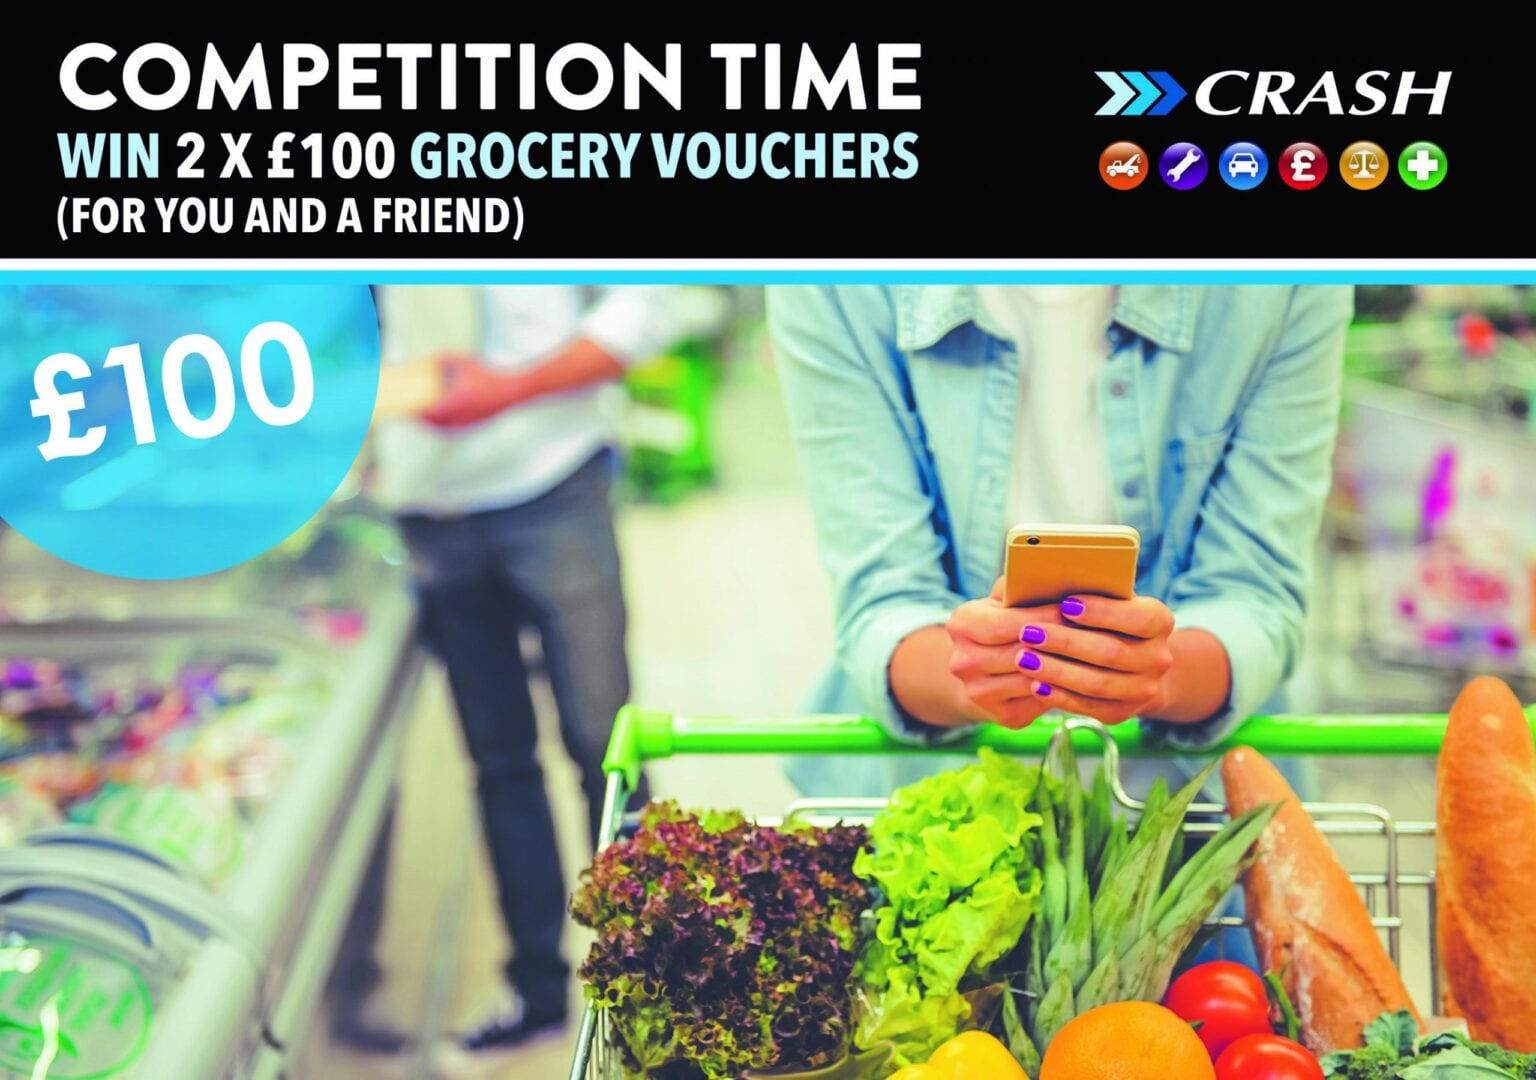 competition to win grocery vouchers